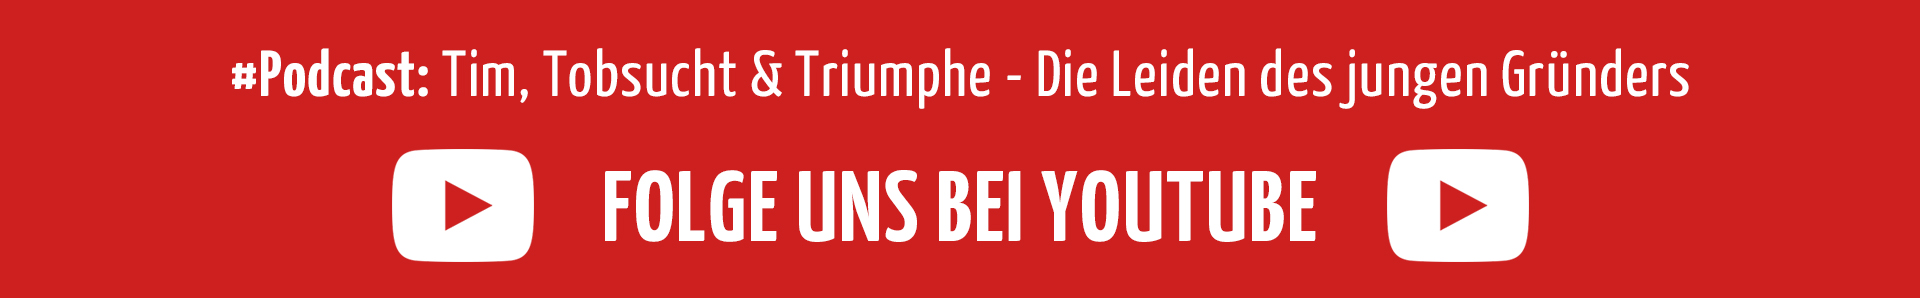 Banner Youtube Podcast Tim, Tobsucht & Triumpfe